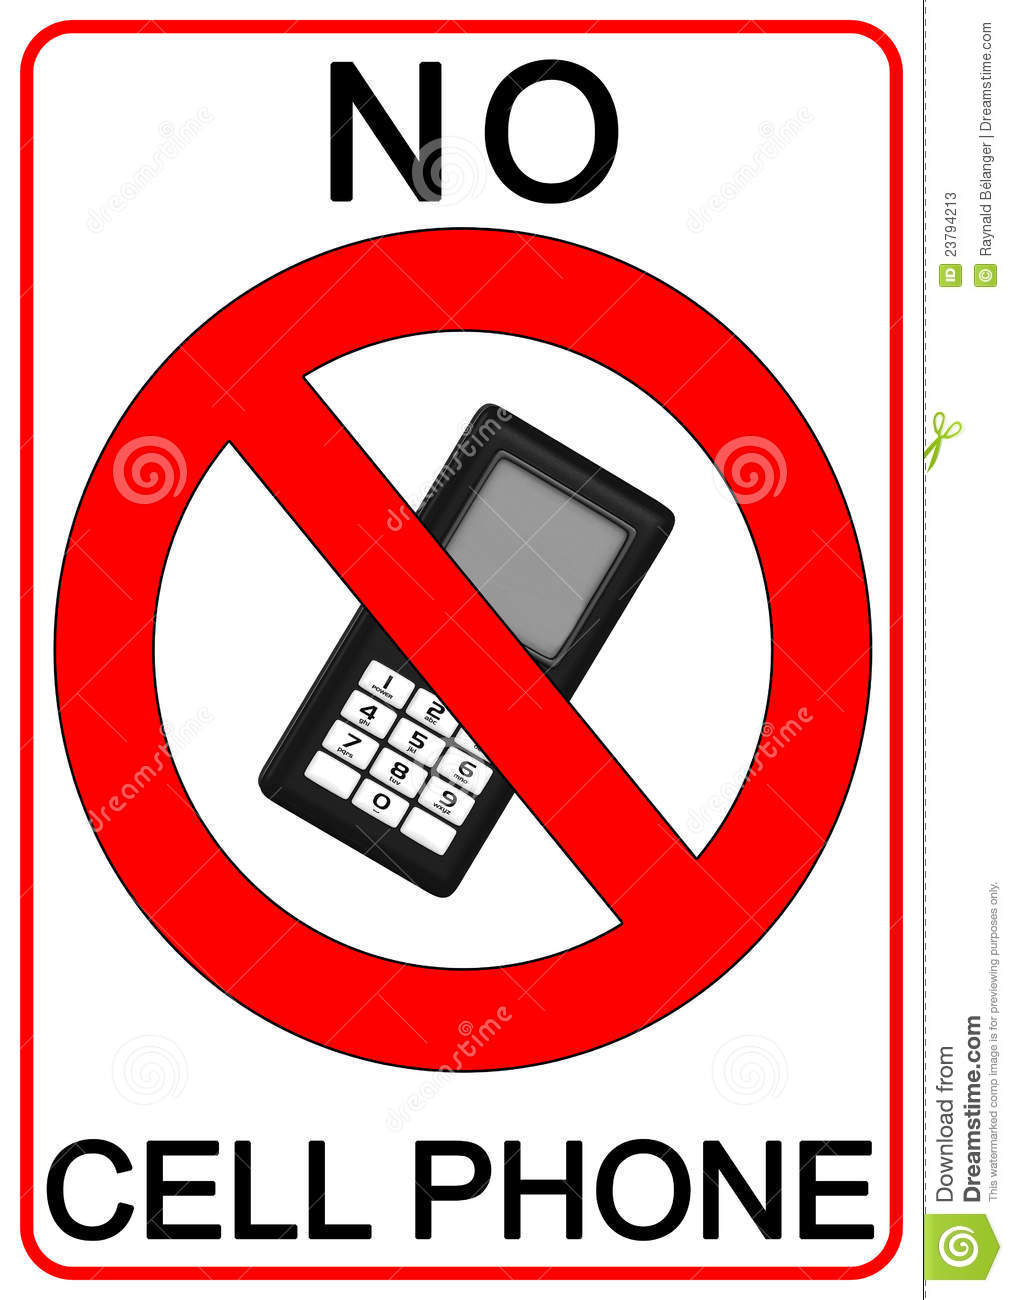 No Cell Phone Sign Stock Photos - Image: 23794213